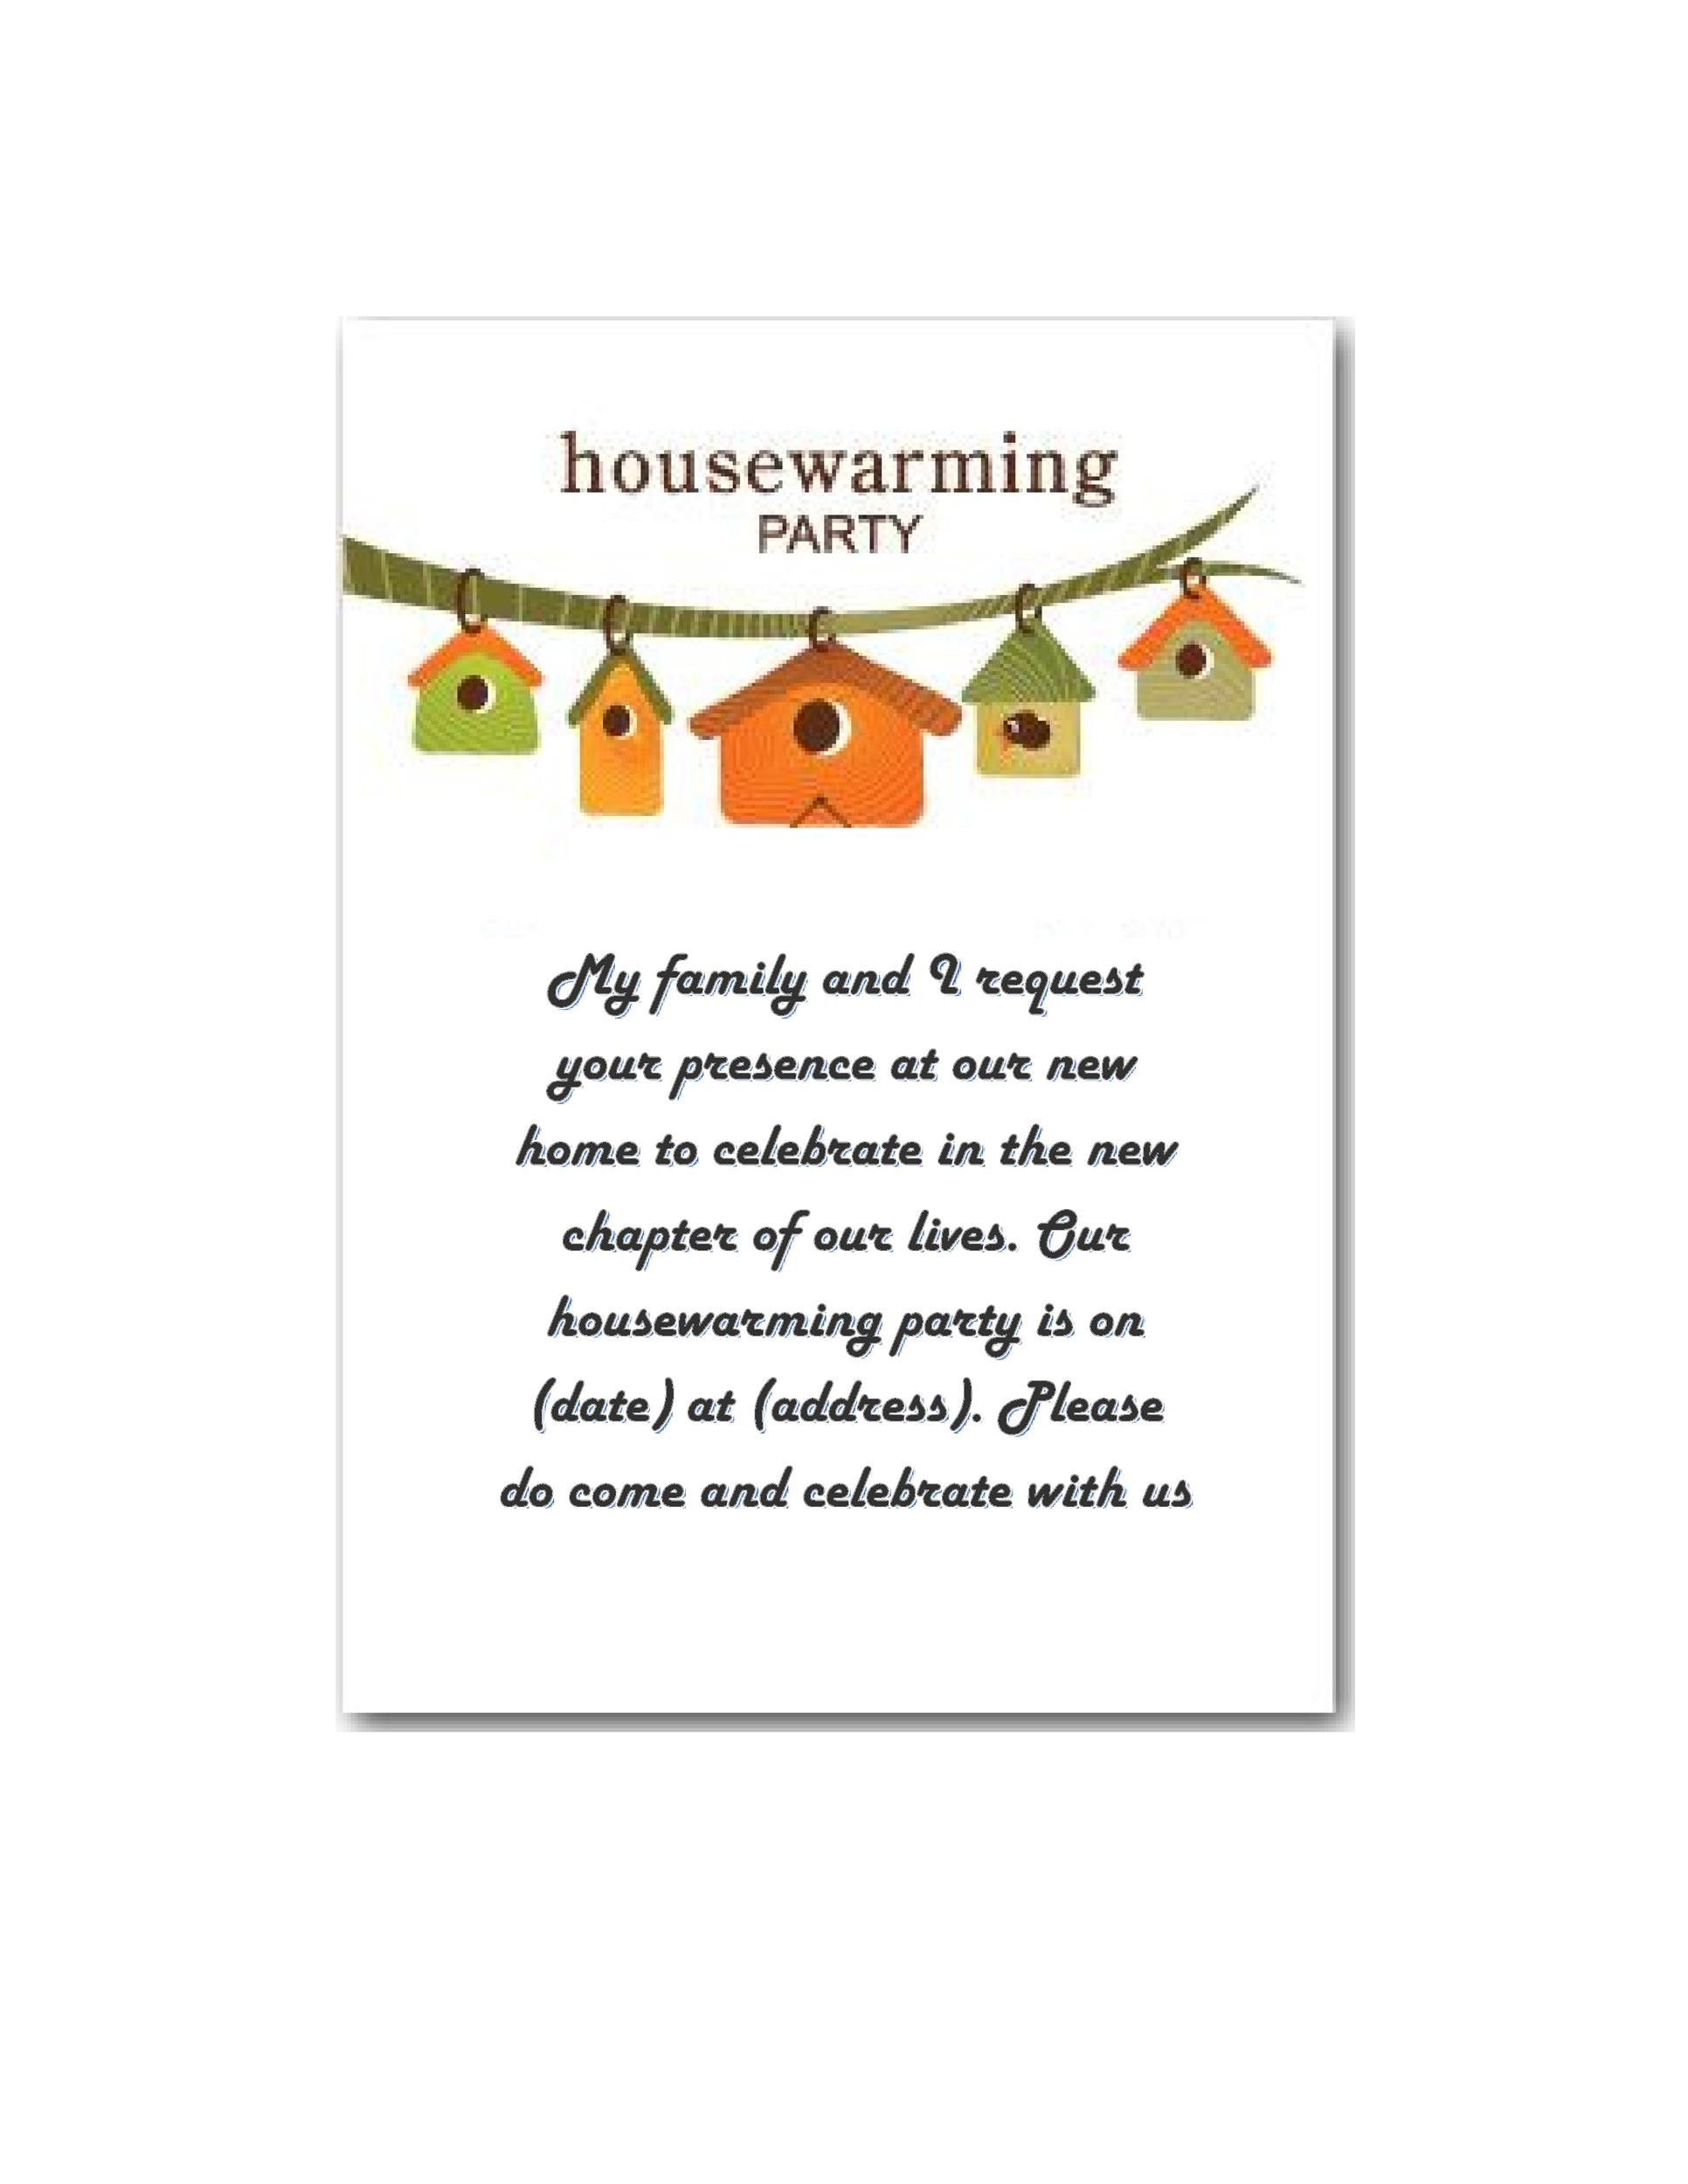 picture regarding Free Printable Housewarming Invitations referred to as 40+ Totally free Printable Housewarming Bash Invitation Templates